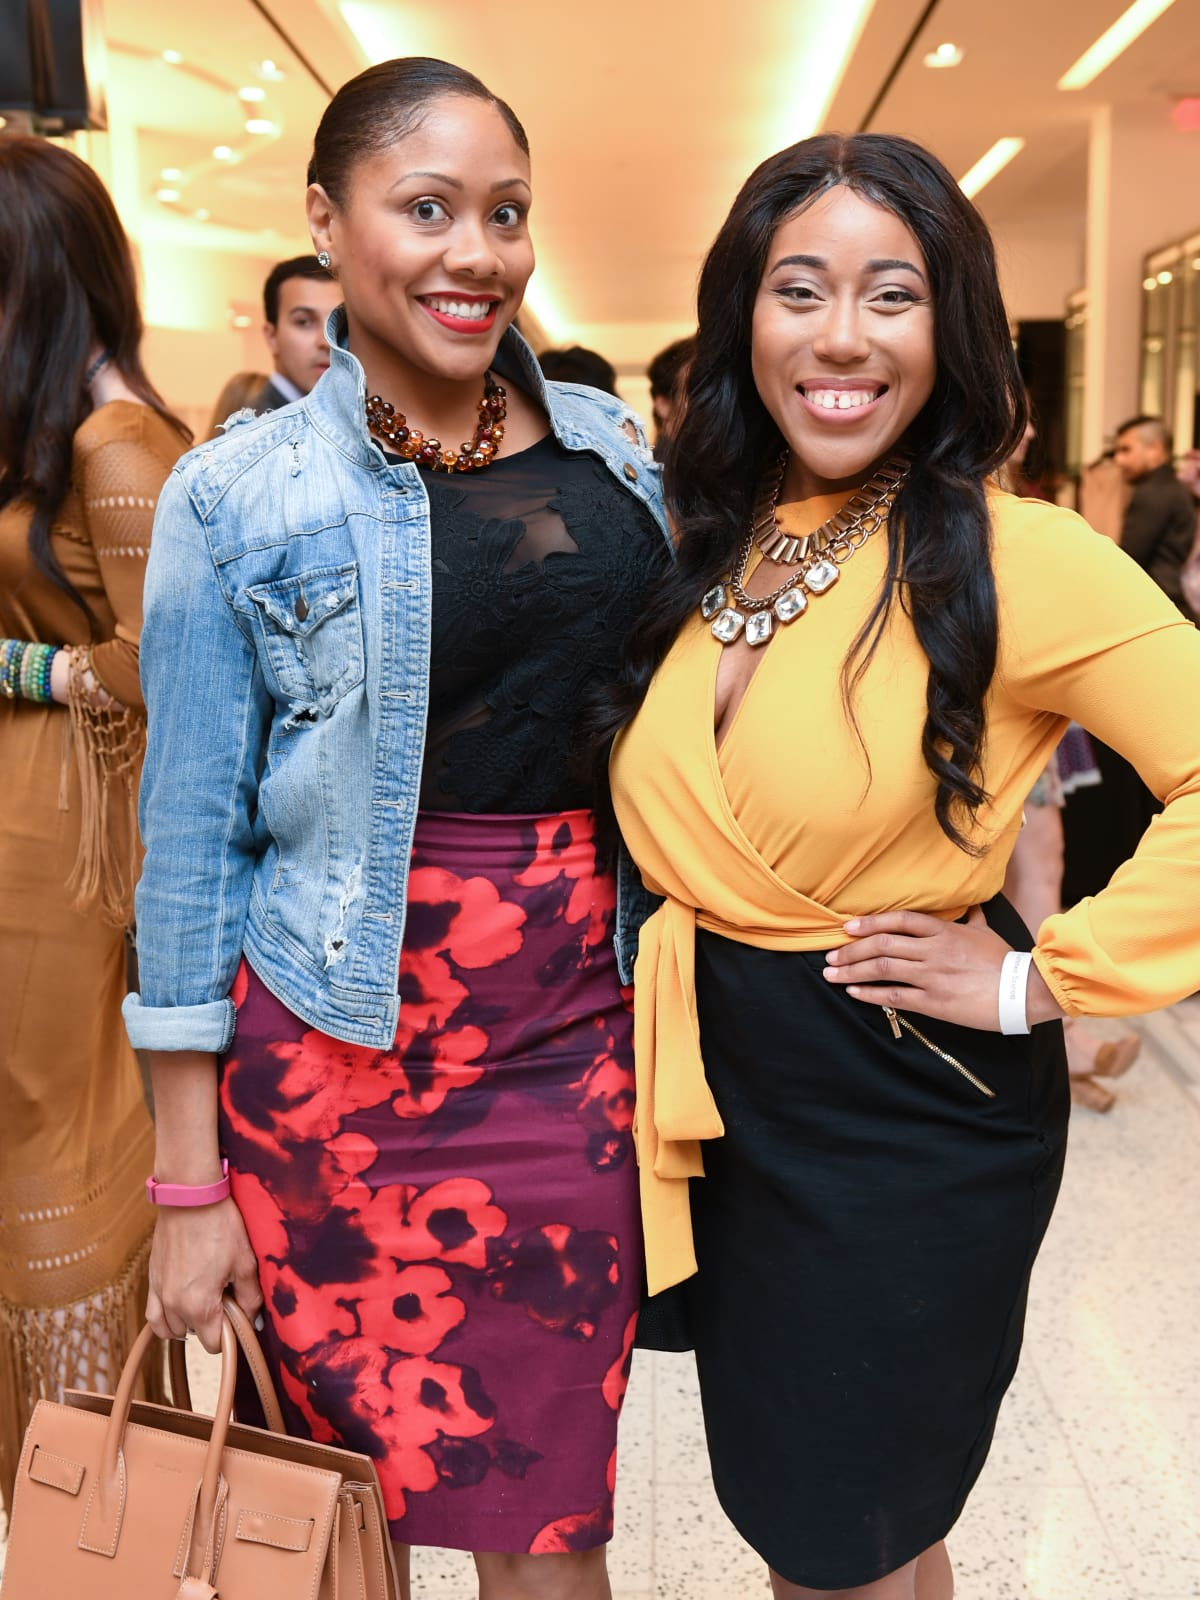 Houston, Women of Wardrobe Summer Soiree, August 2017, Diana Morcho, Jazz Simmons